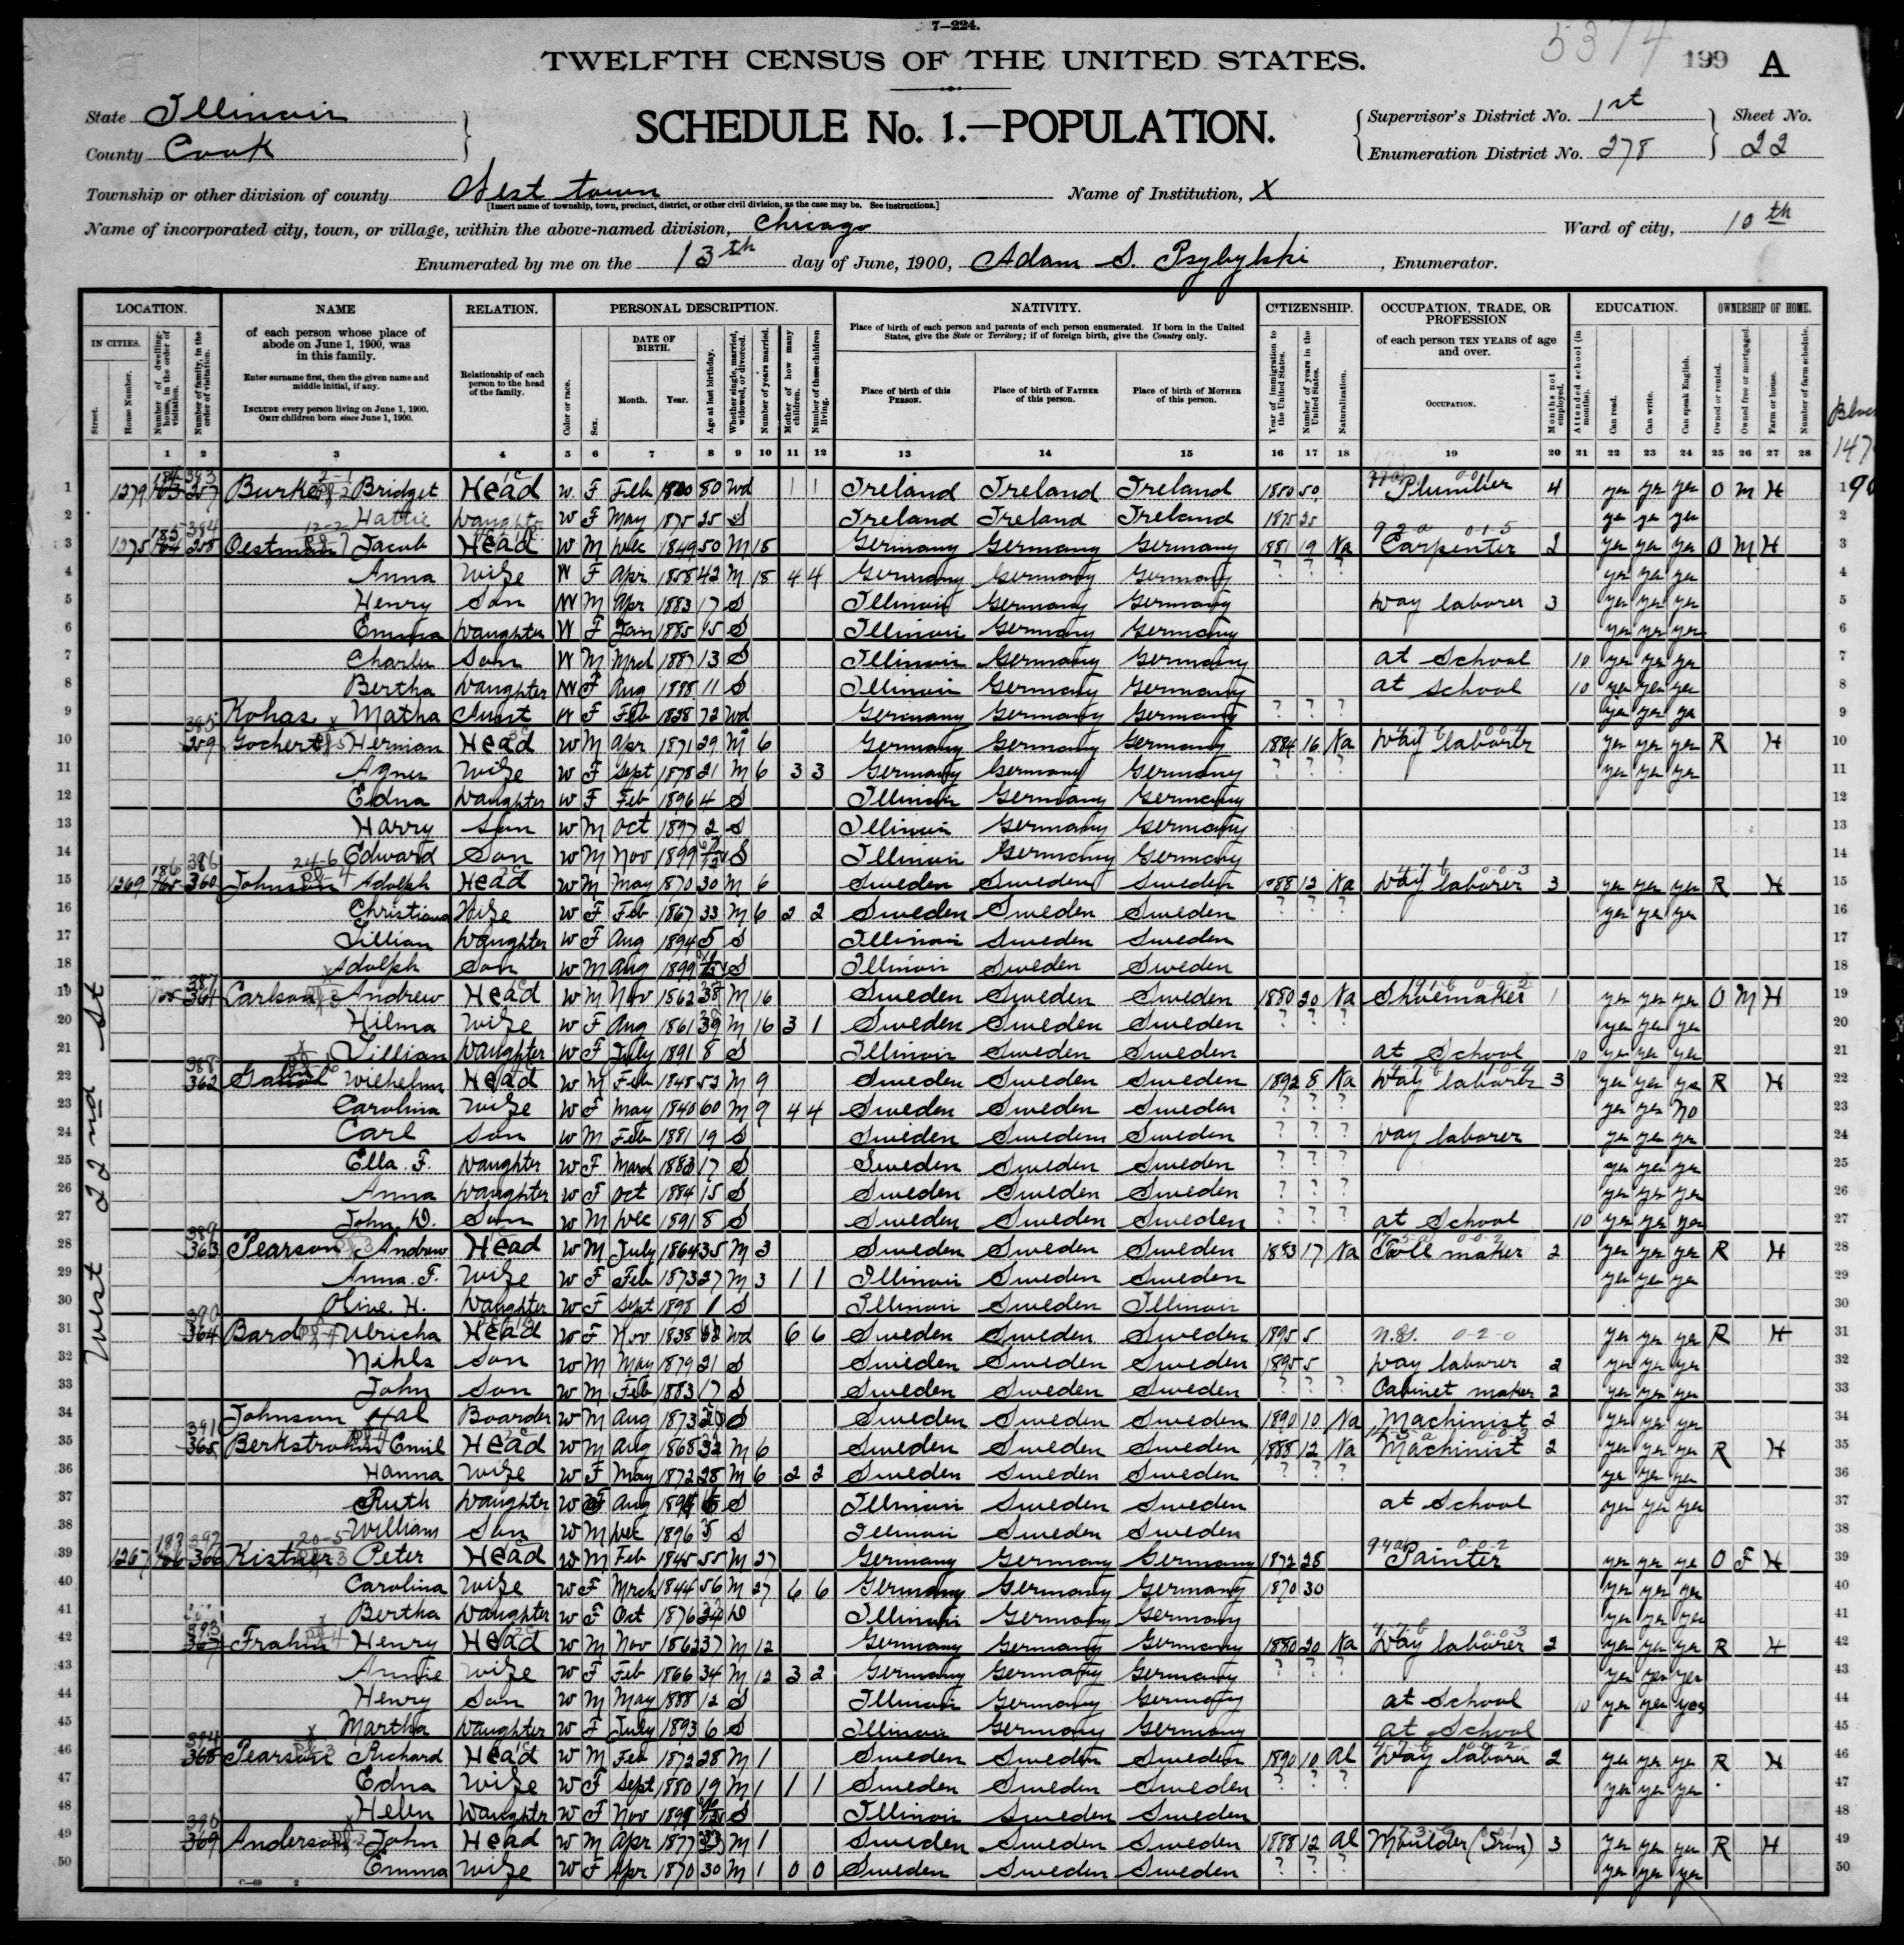 Illinois: COOK County, Enumeration District 278, Sheet No. 22A